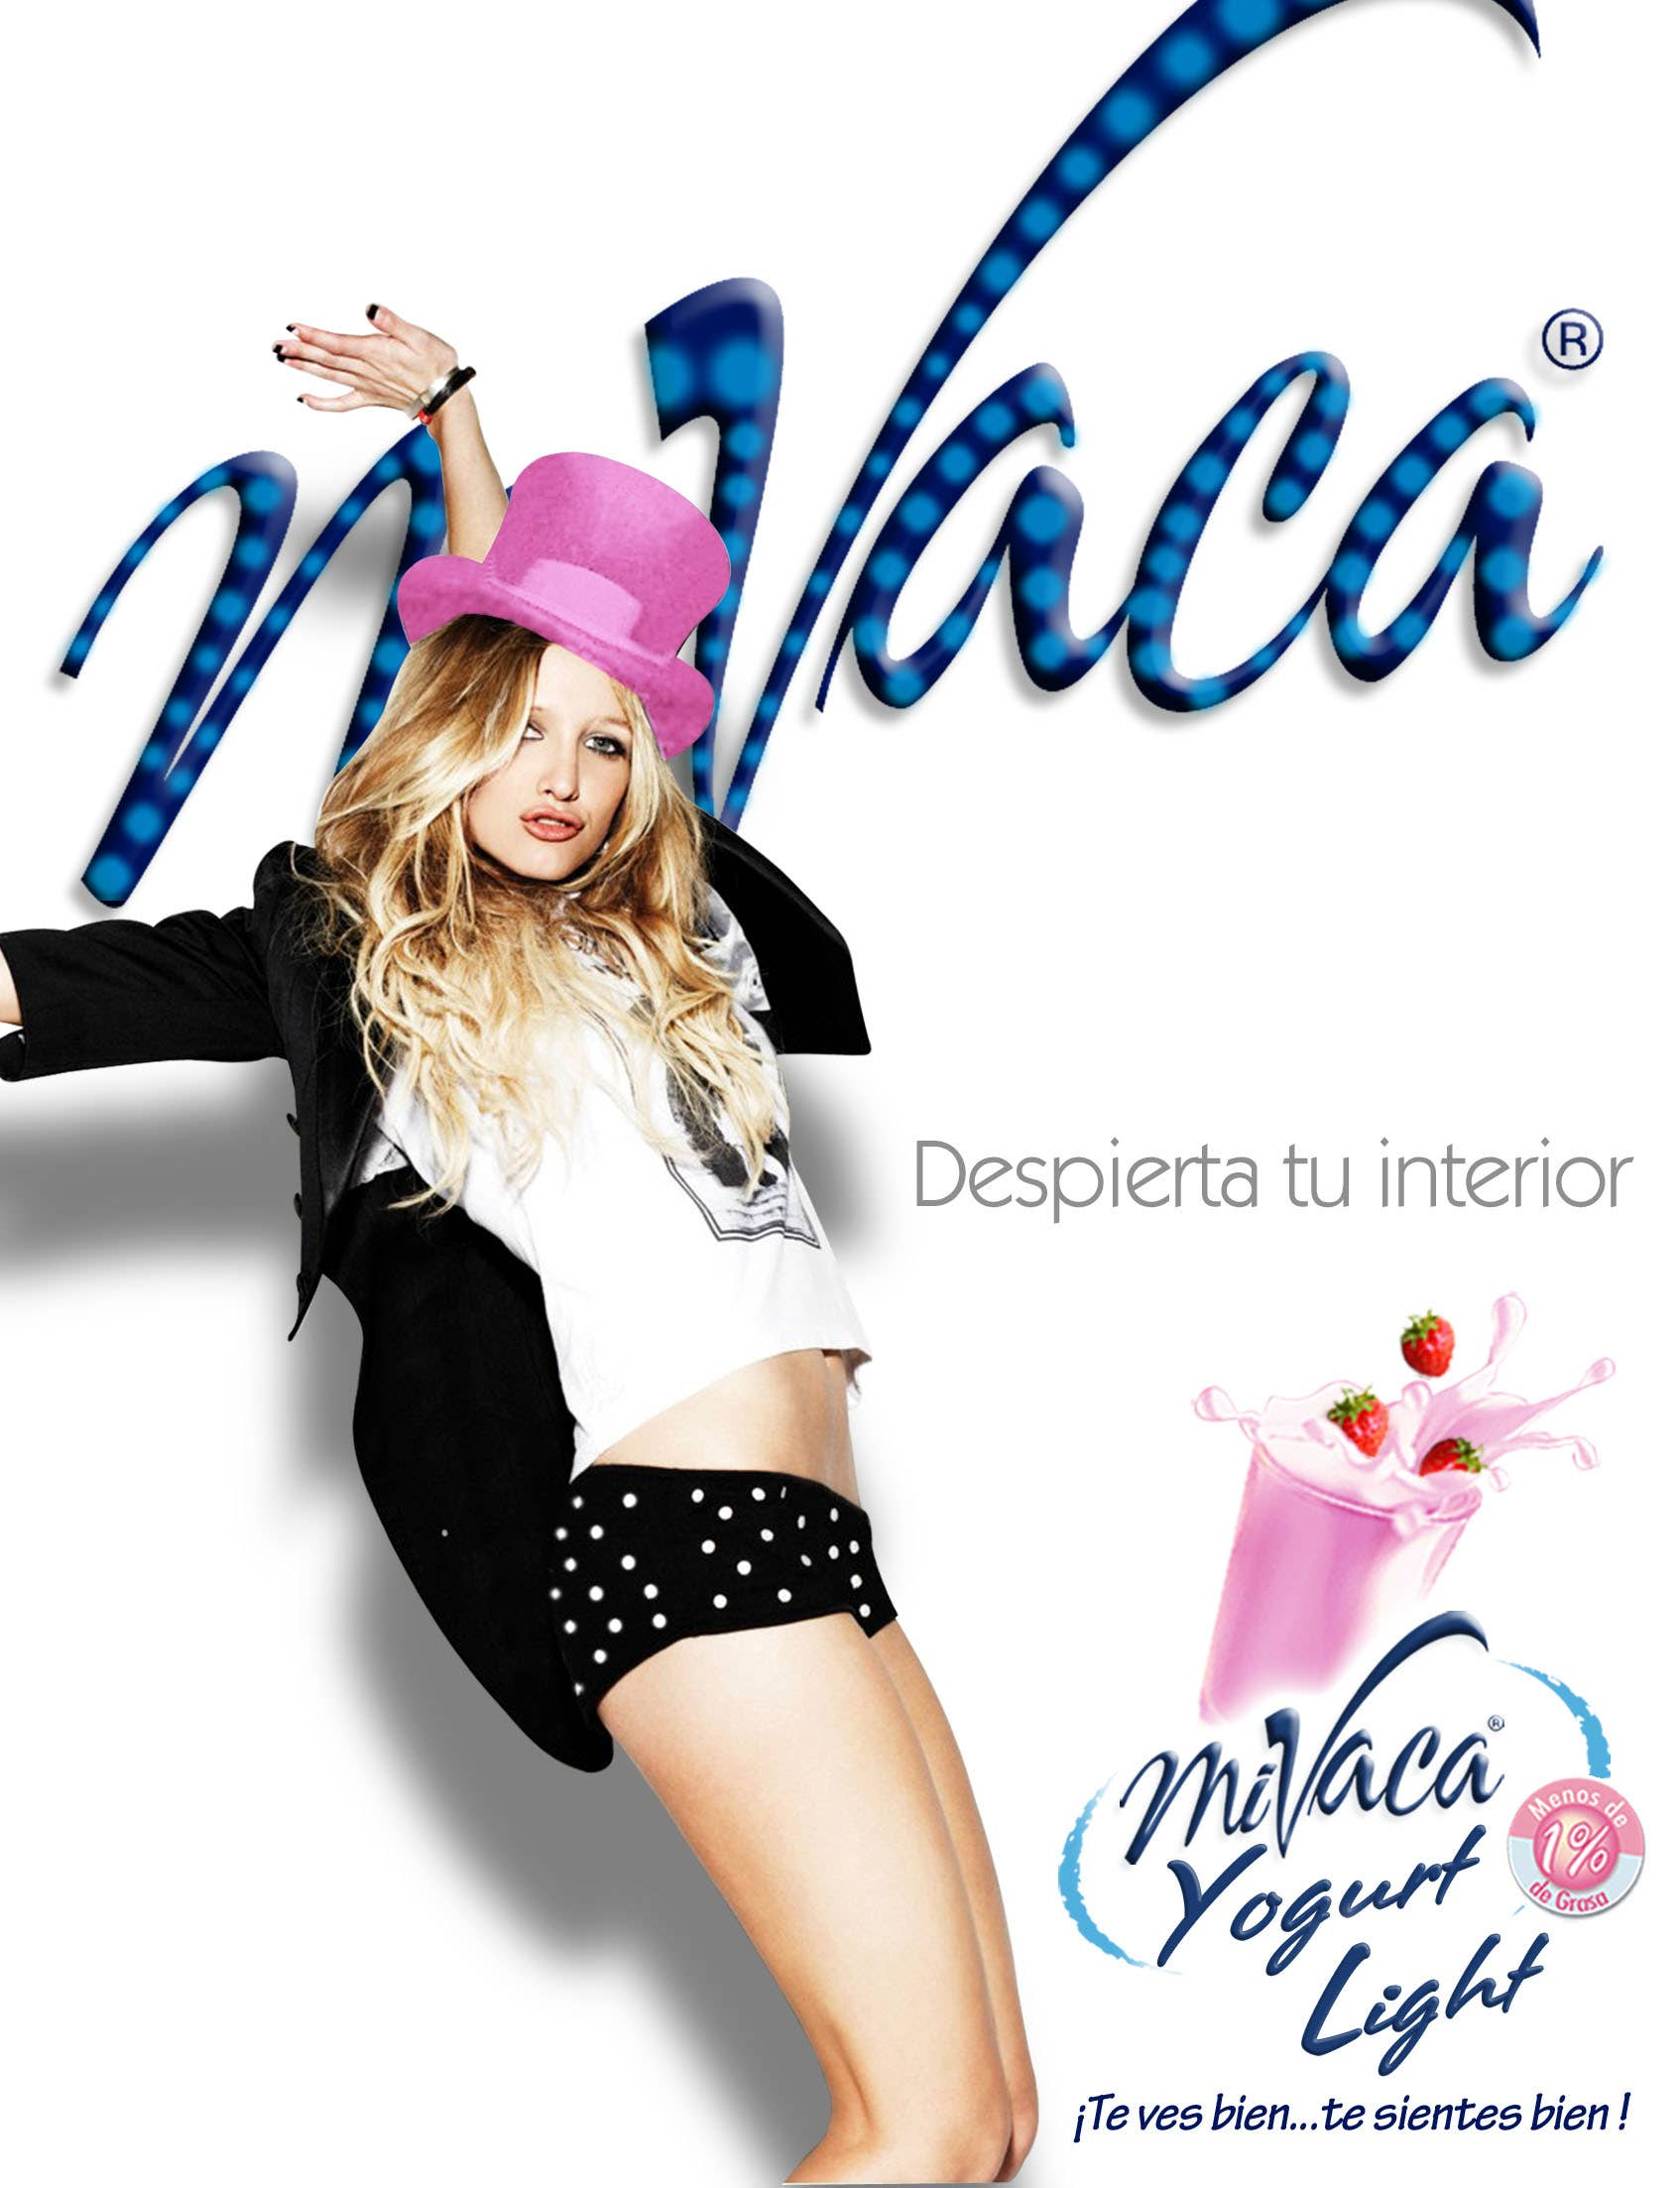 Campaña Publicitaria de Yogurt Mi Vaca Light